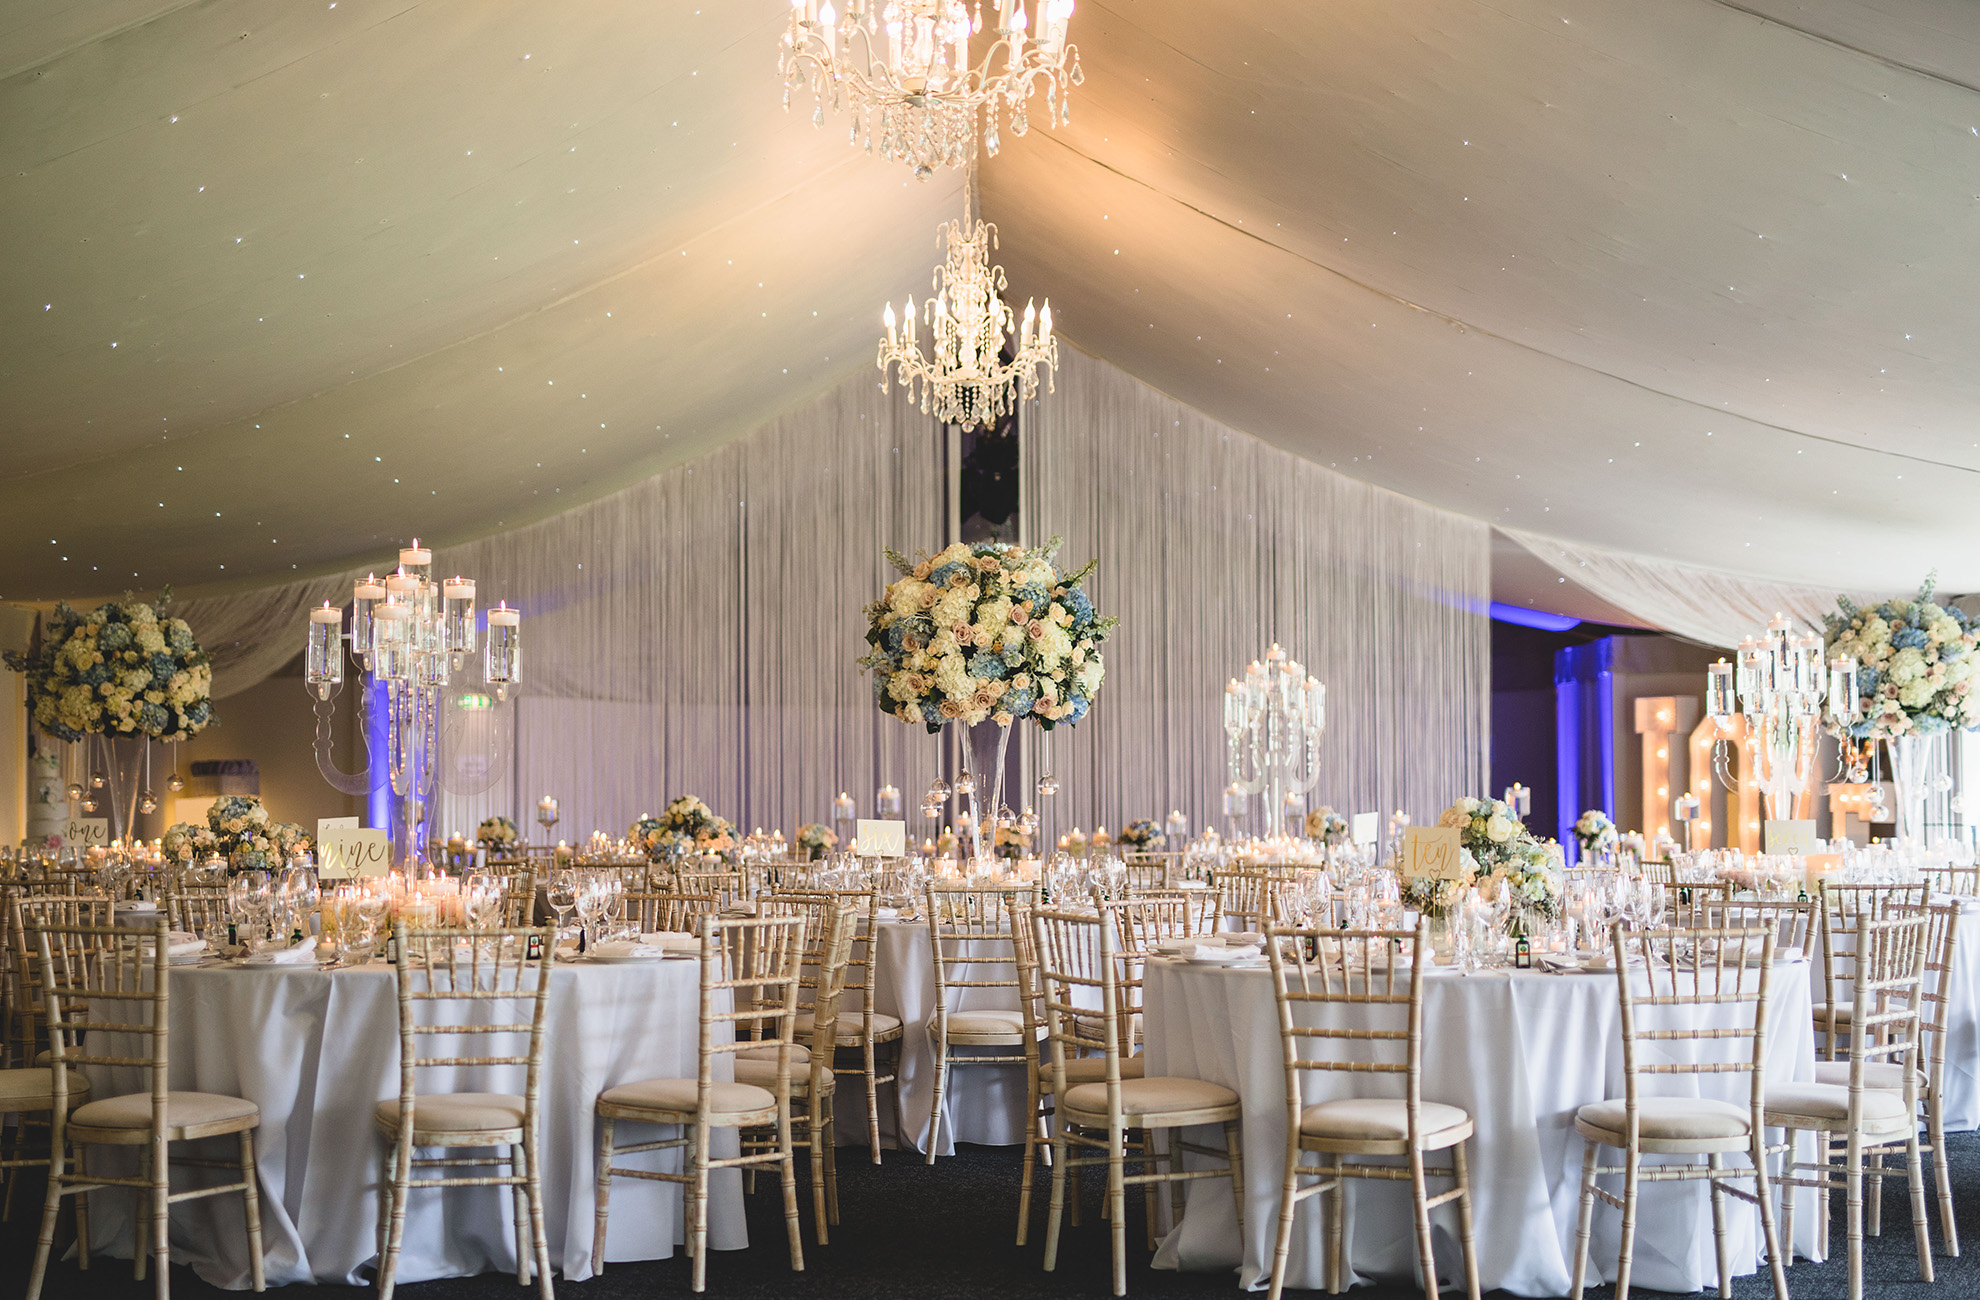 The Pavillion at Combermere Abbey is decorated with pastel shades for a spring wedding reception